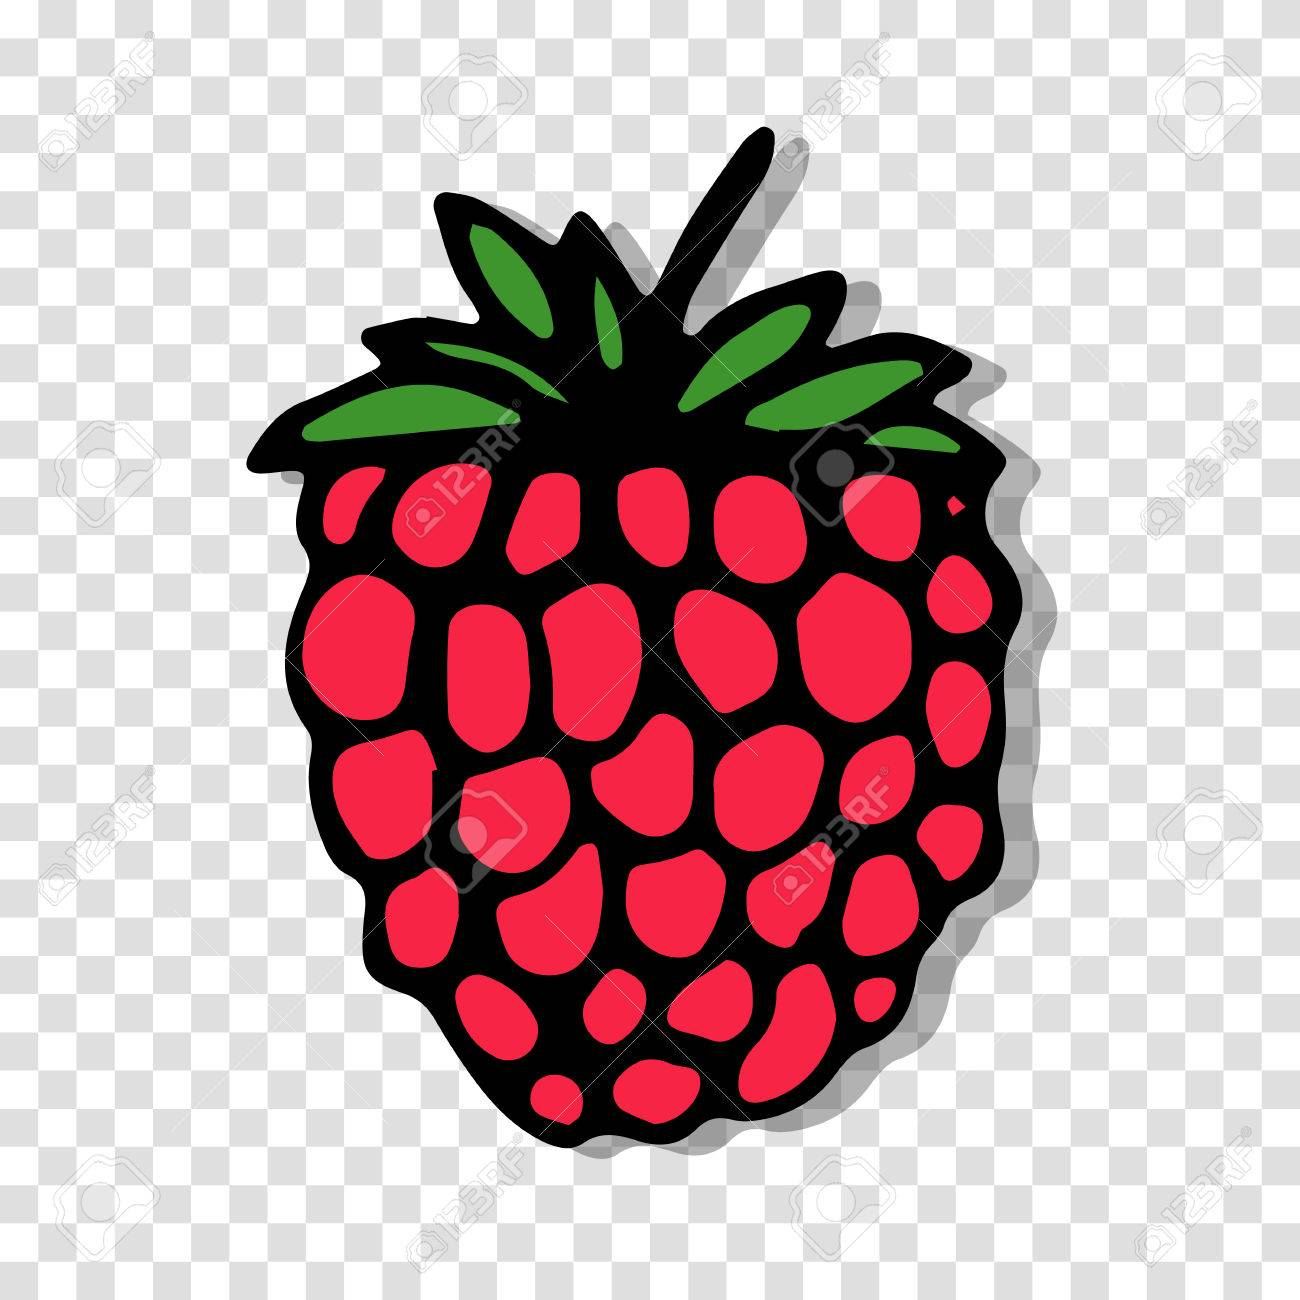 pineapple transparent background. raspberry sketch on transparent background for your design stock vector - 40327059 pineapple l